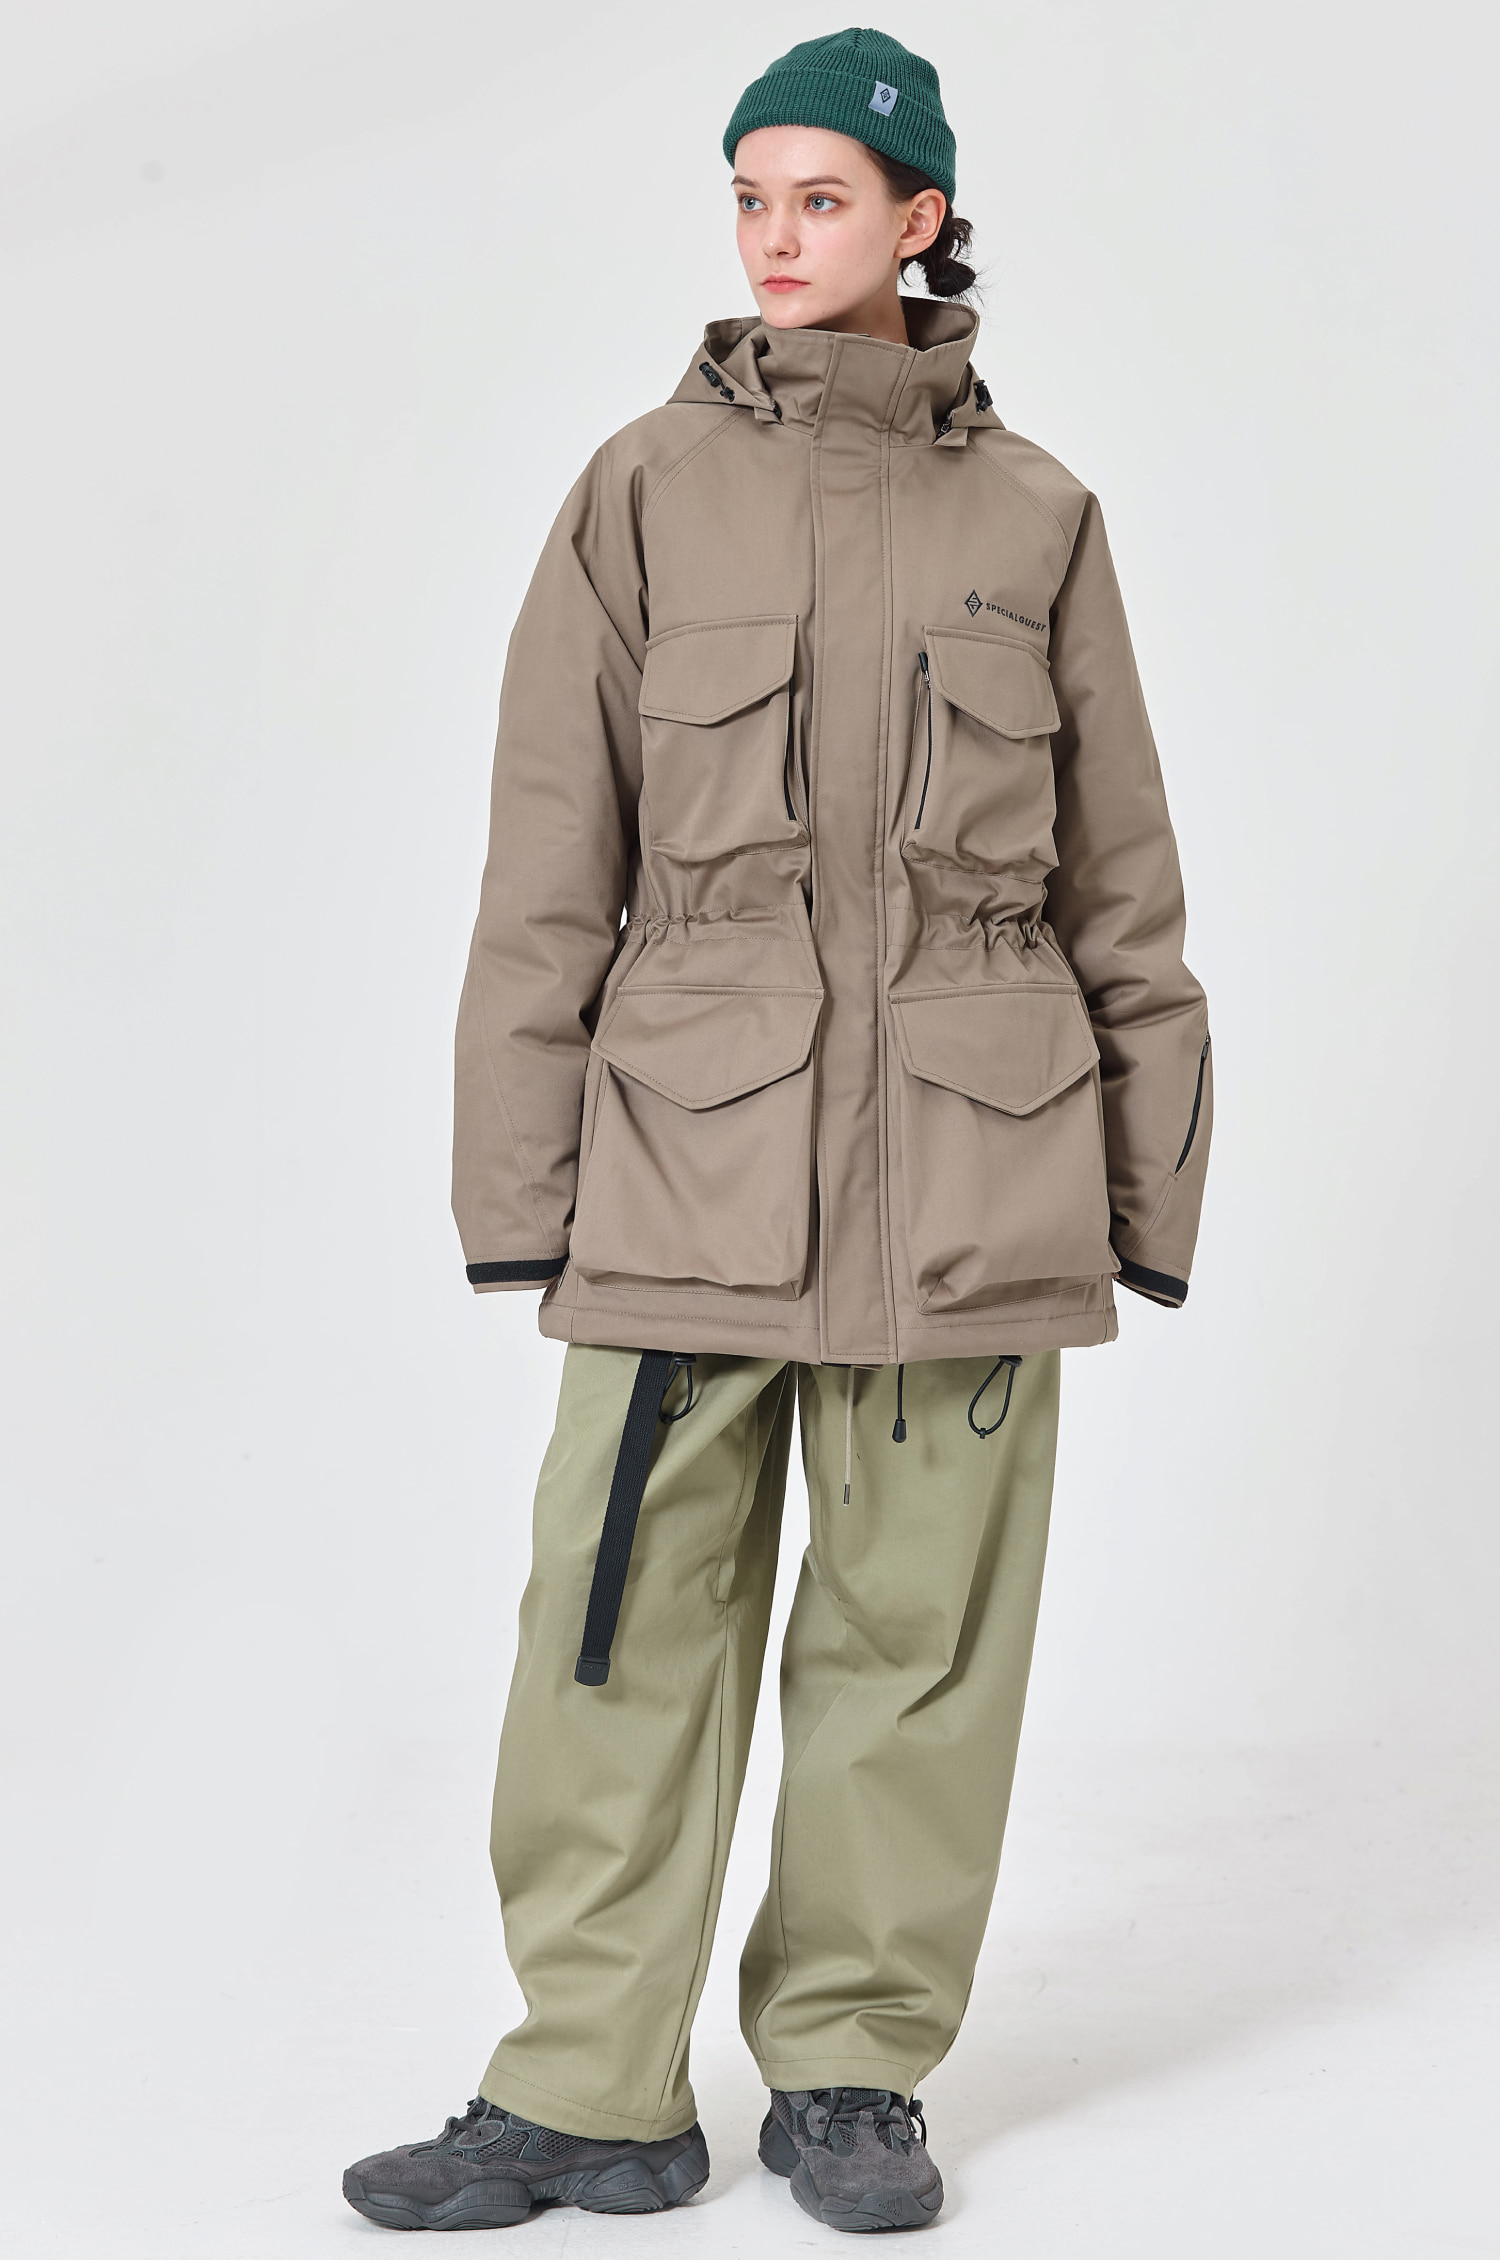 SET 4 - JACKET / PANTS